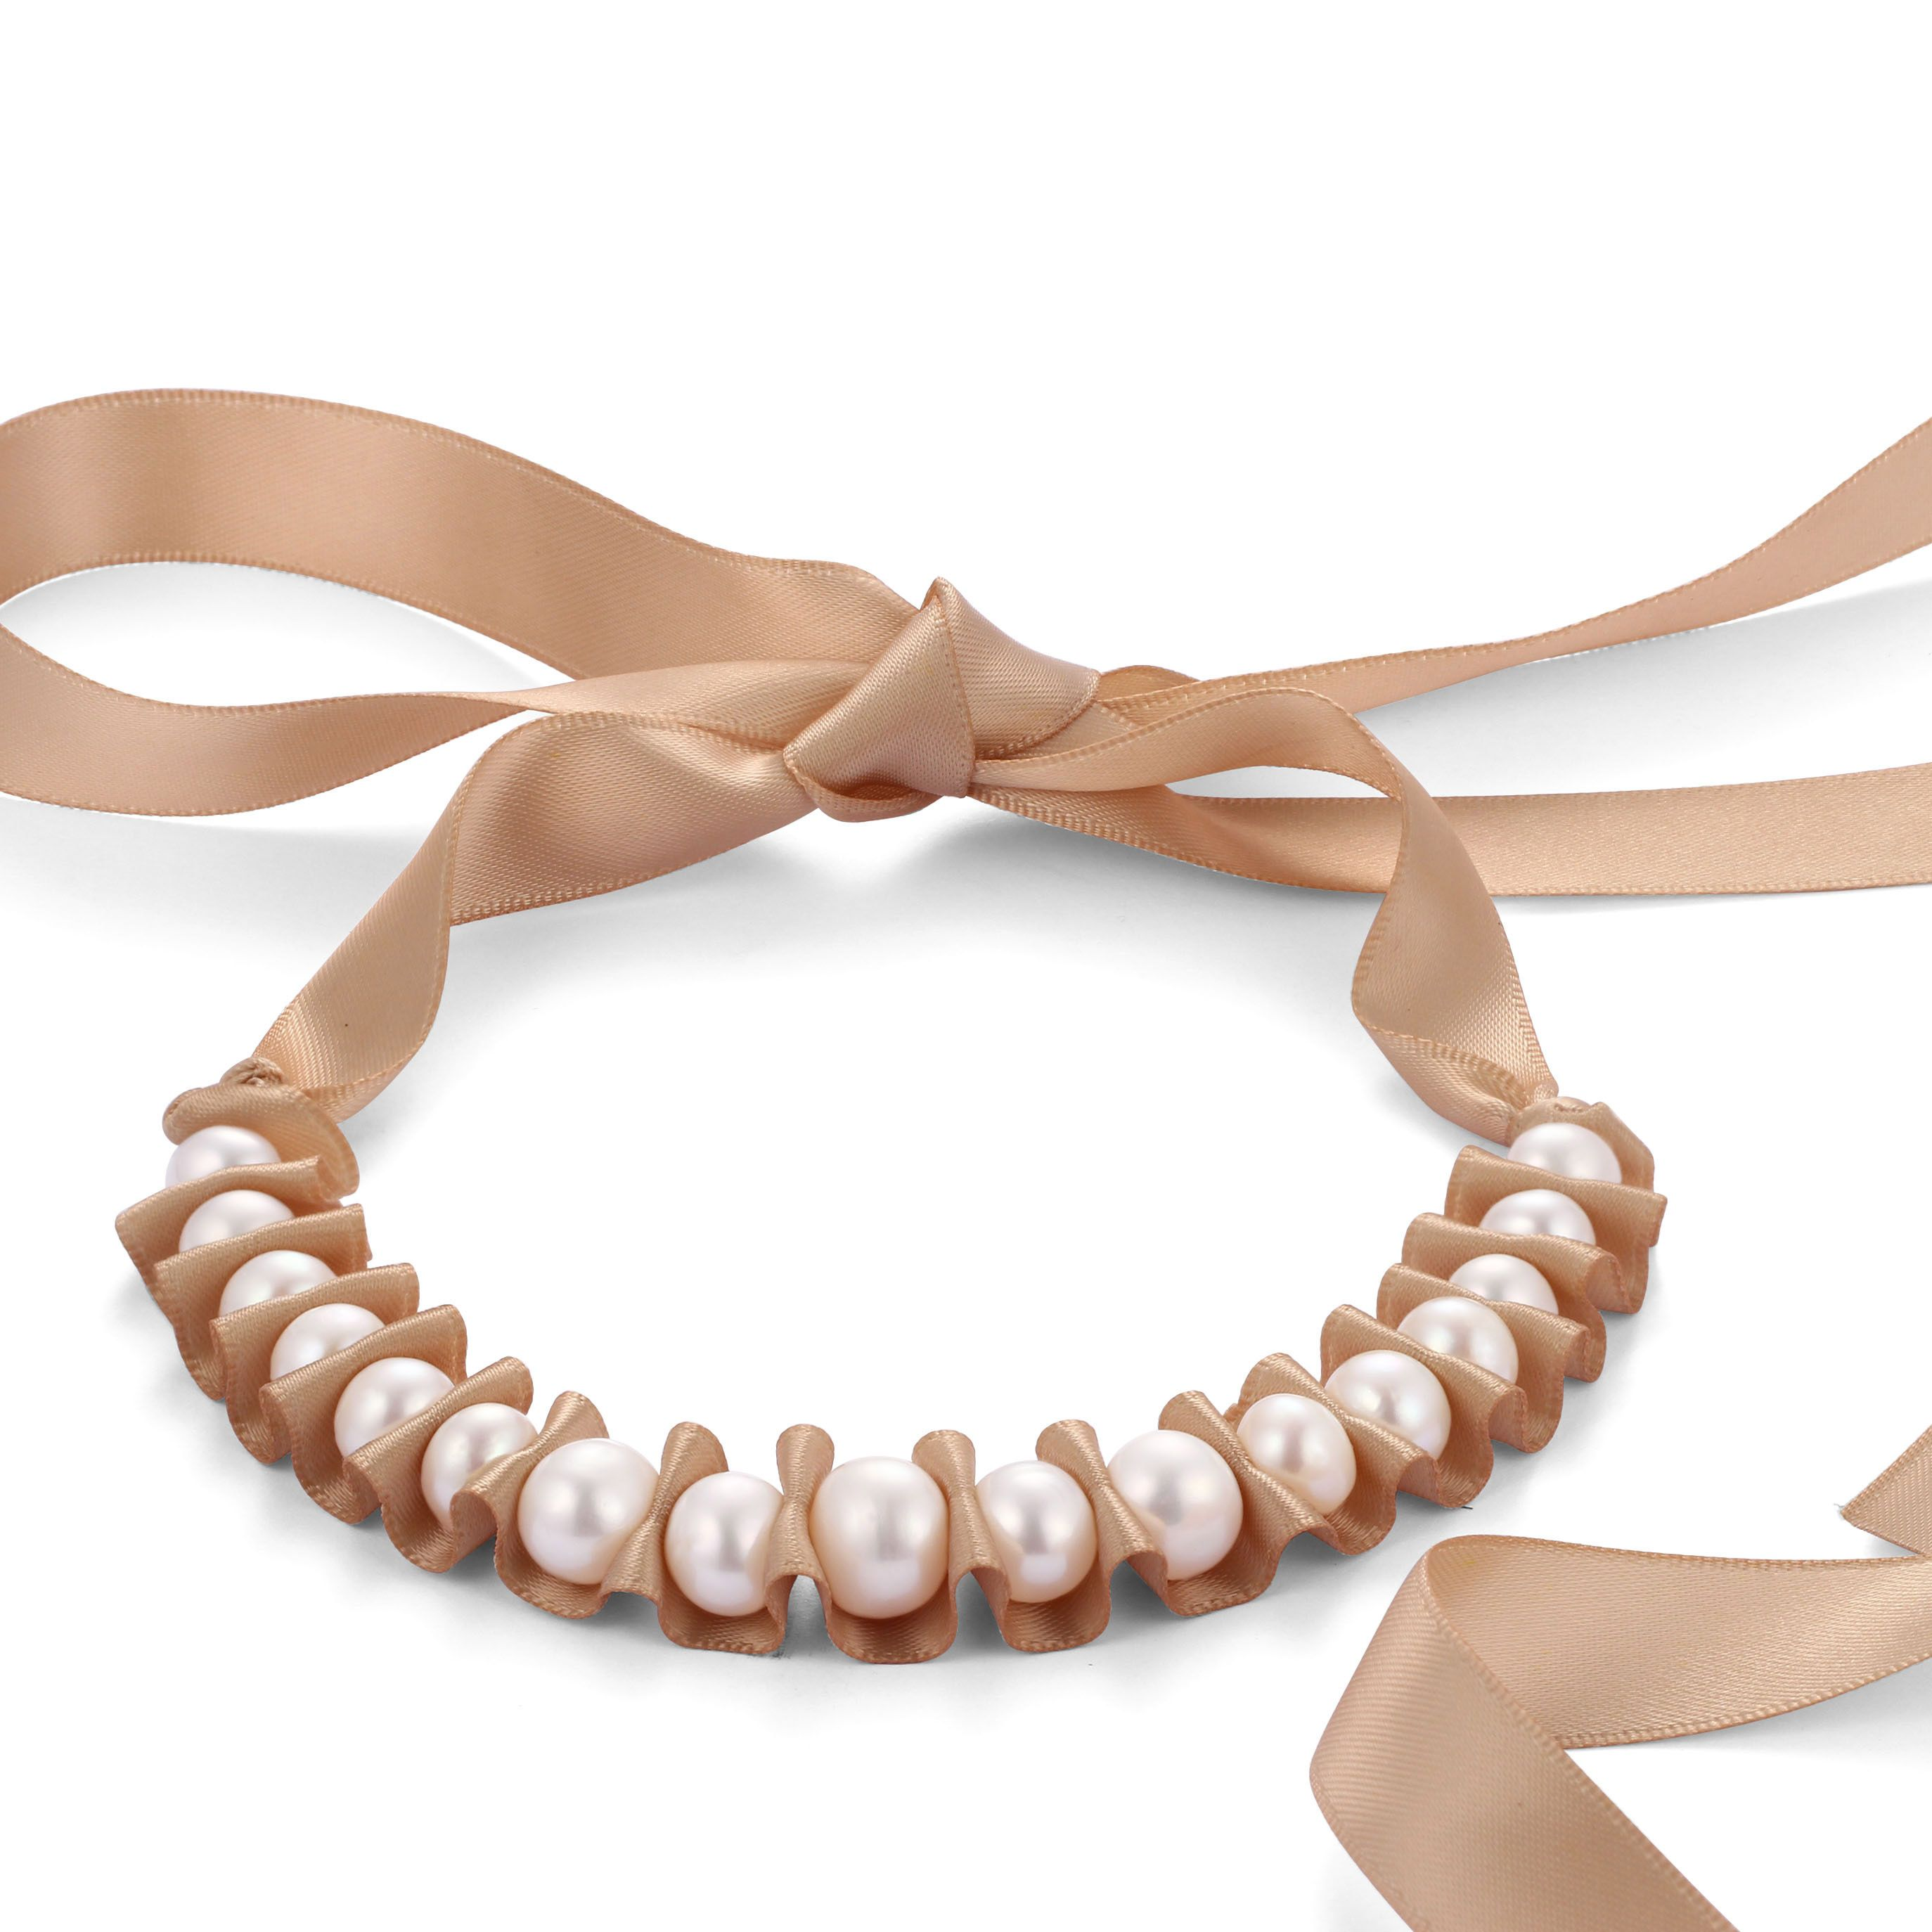 Rope Handmade Freshwater Pearl Necklace Unique Wedding Jewelry